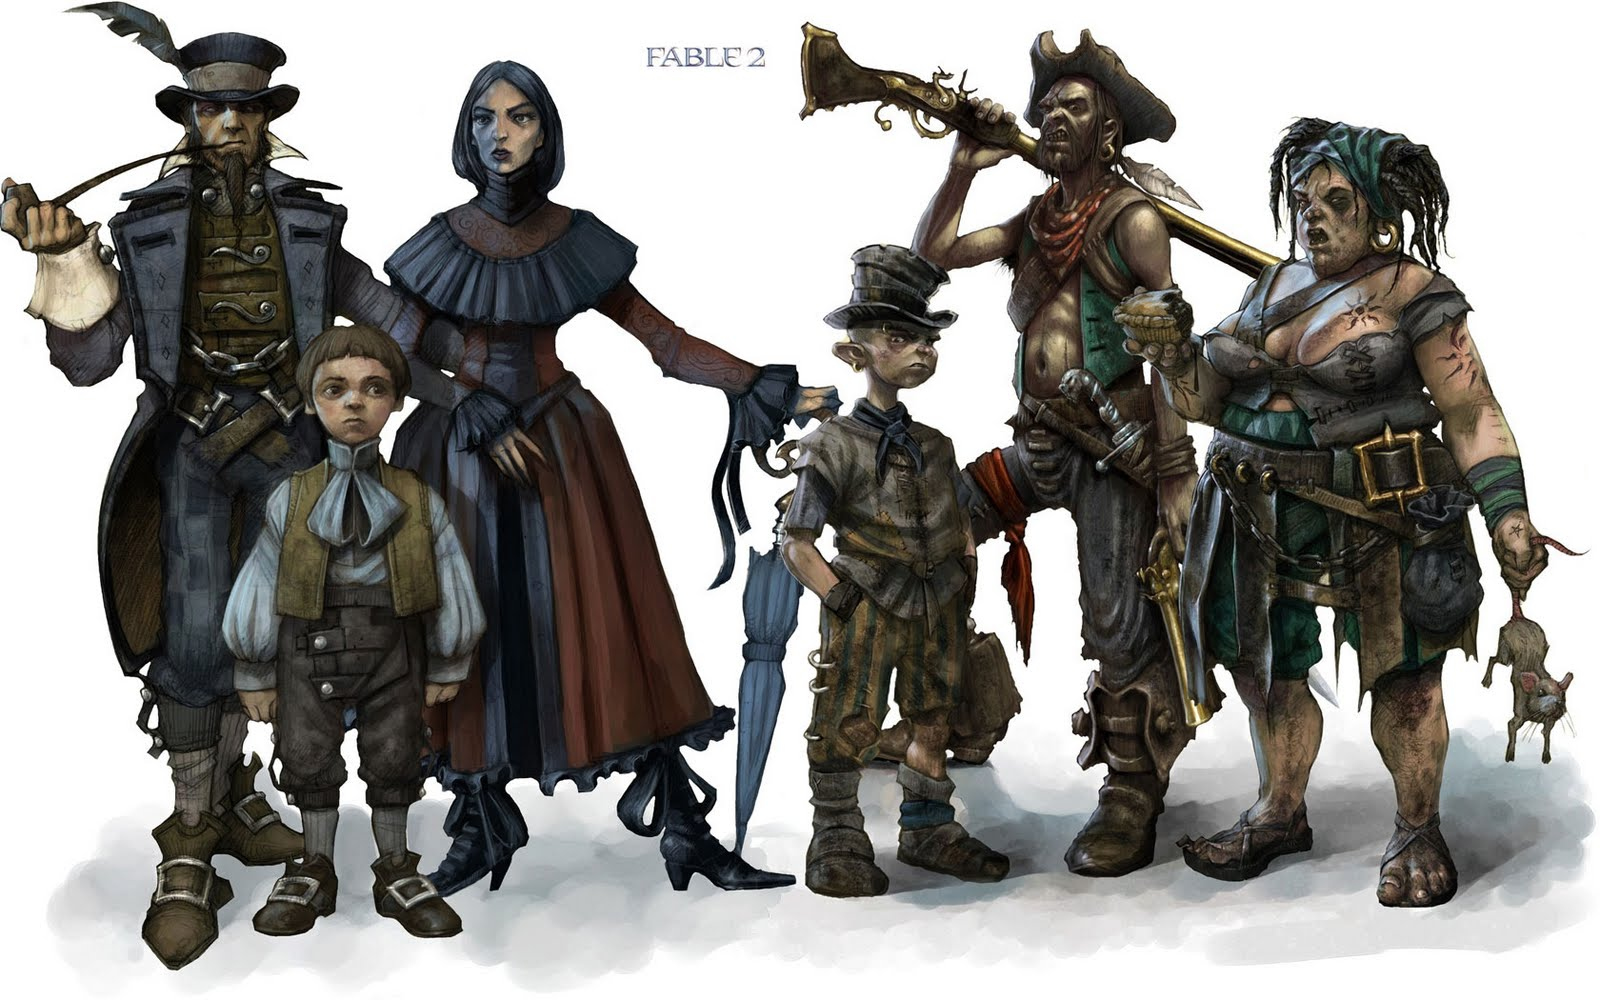 Dominic Lim's Design Dashboard: Fable 2: A Disappointment